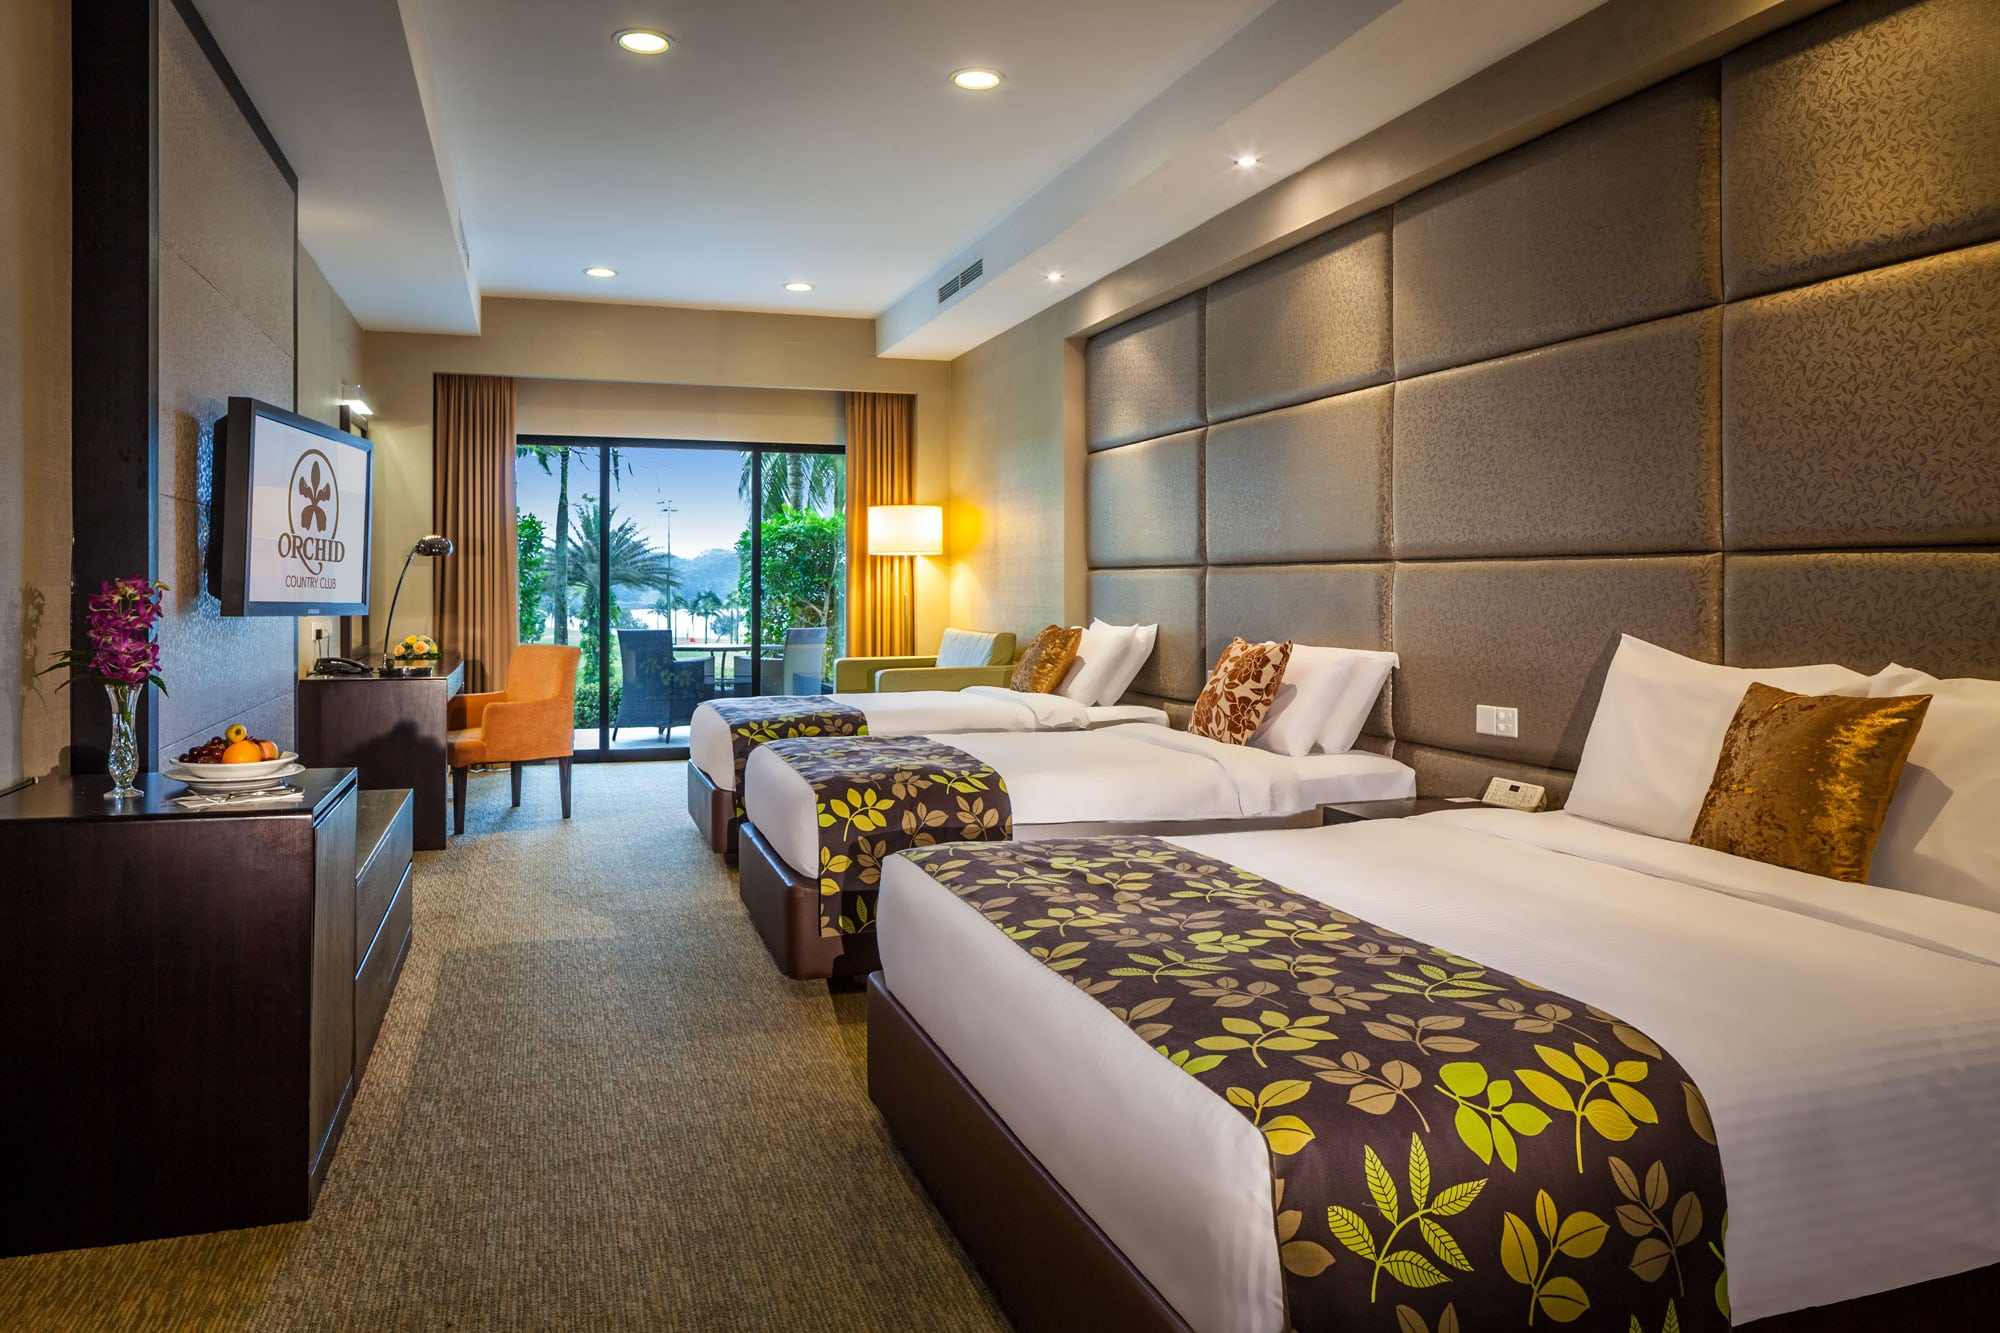 Spacious and affordable Family Deluxe Room at OCC Hotel Singapore